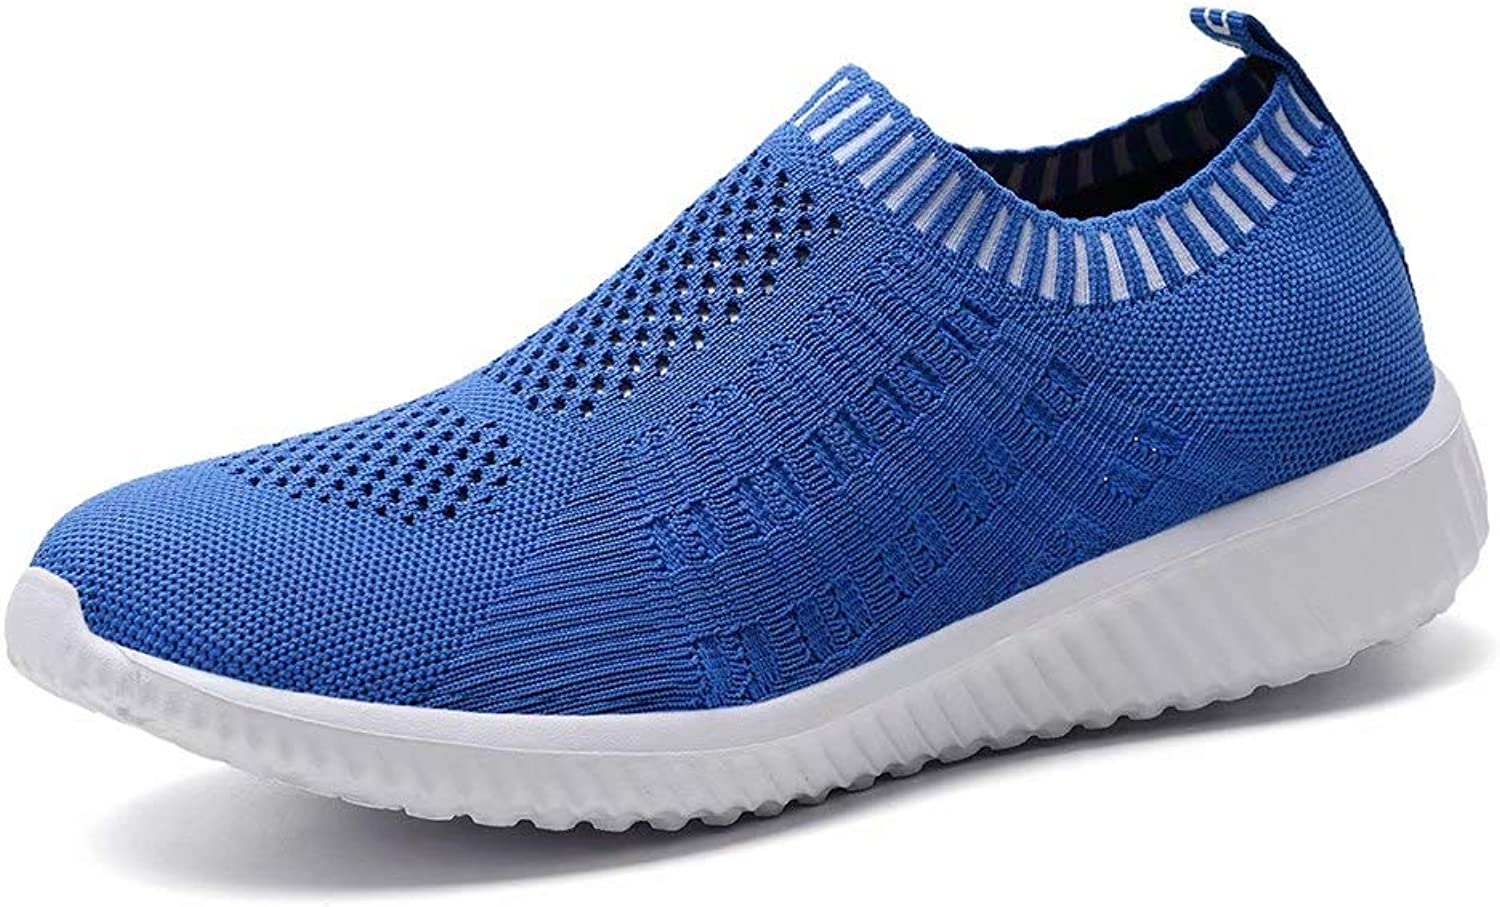 Konhill Women's Lightweight Casual Walking Athletic shoes Breathable Mesh Running Slip-On Sneakers, bluee, 37